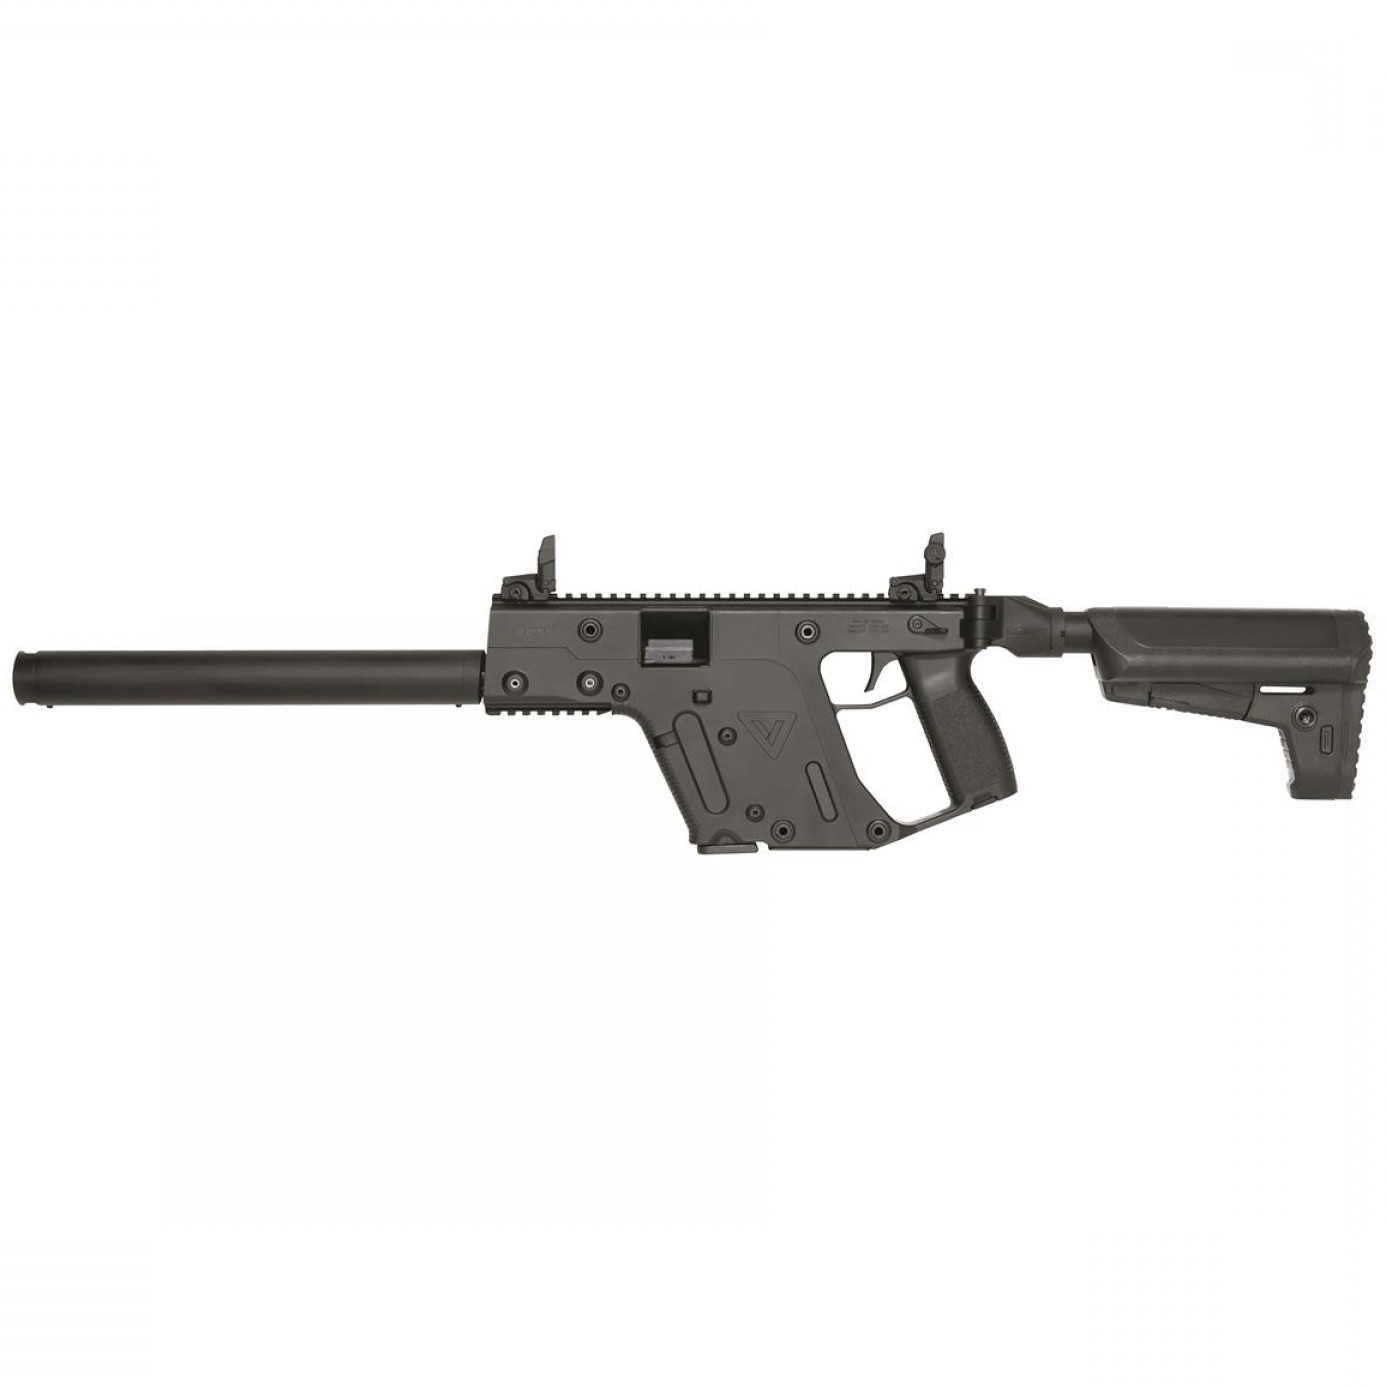 For Kriss Vector Side Picatinny Rails: Kriss Vector Gen Ii Crb Black Semi Automatic Mm Barrel Rounds